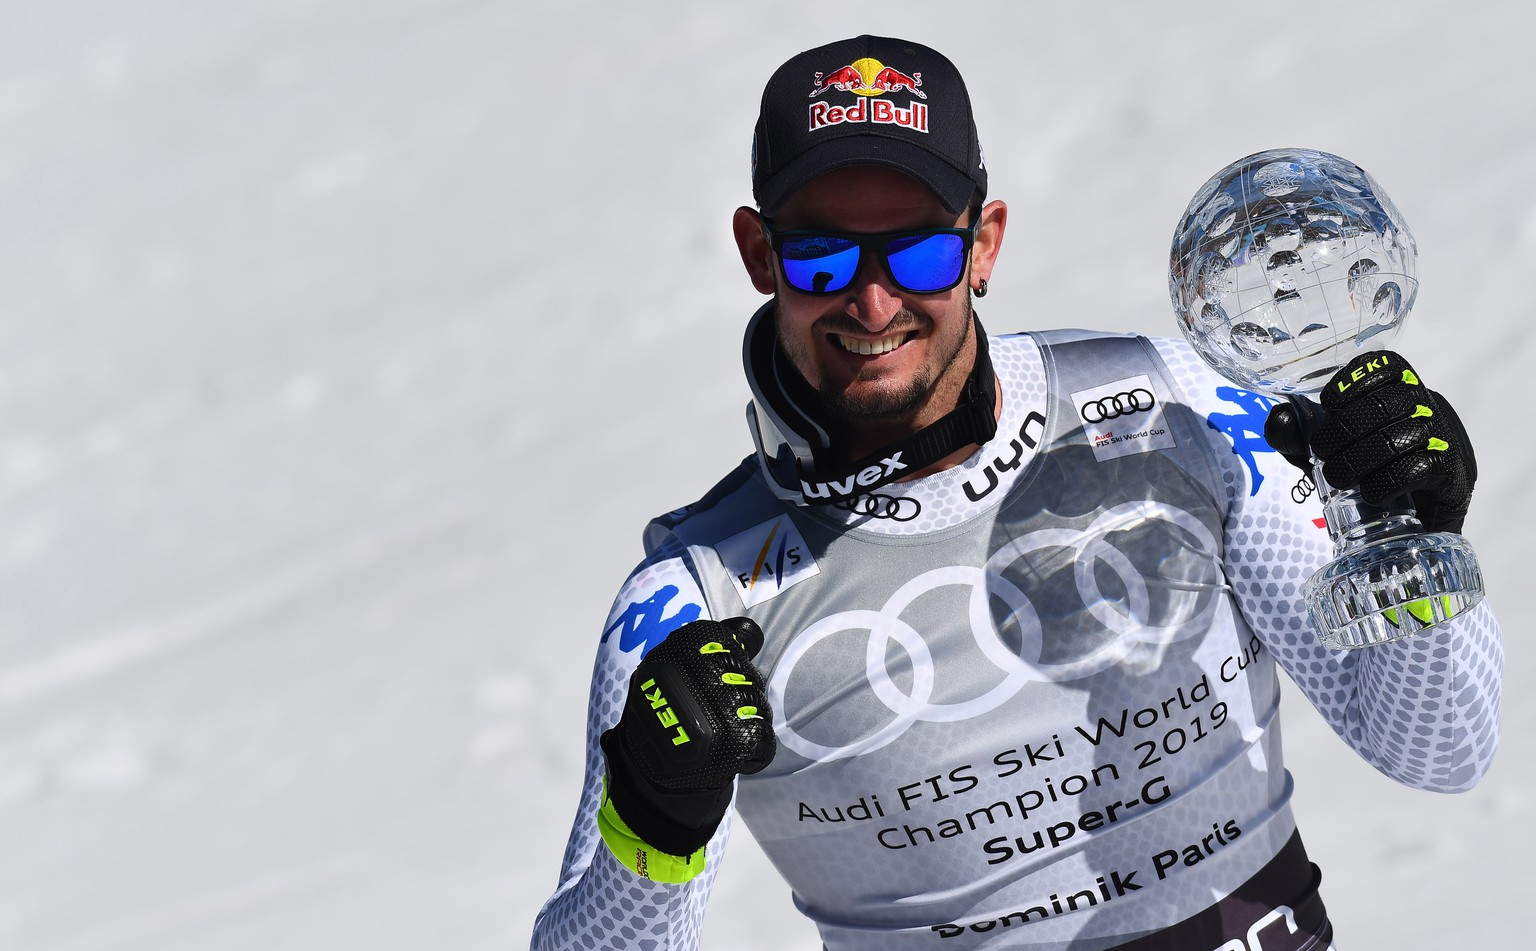 epa07436189 Super G World Cup winner Dominik Paris of Italy poses with his trophy after the men's Super G race of the FIS Alpine Skiing World Cup finals in Soldeu-El Tarter, Andorra, 14 March 2019.  EPA/CHRISTIAN BRUNA